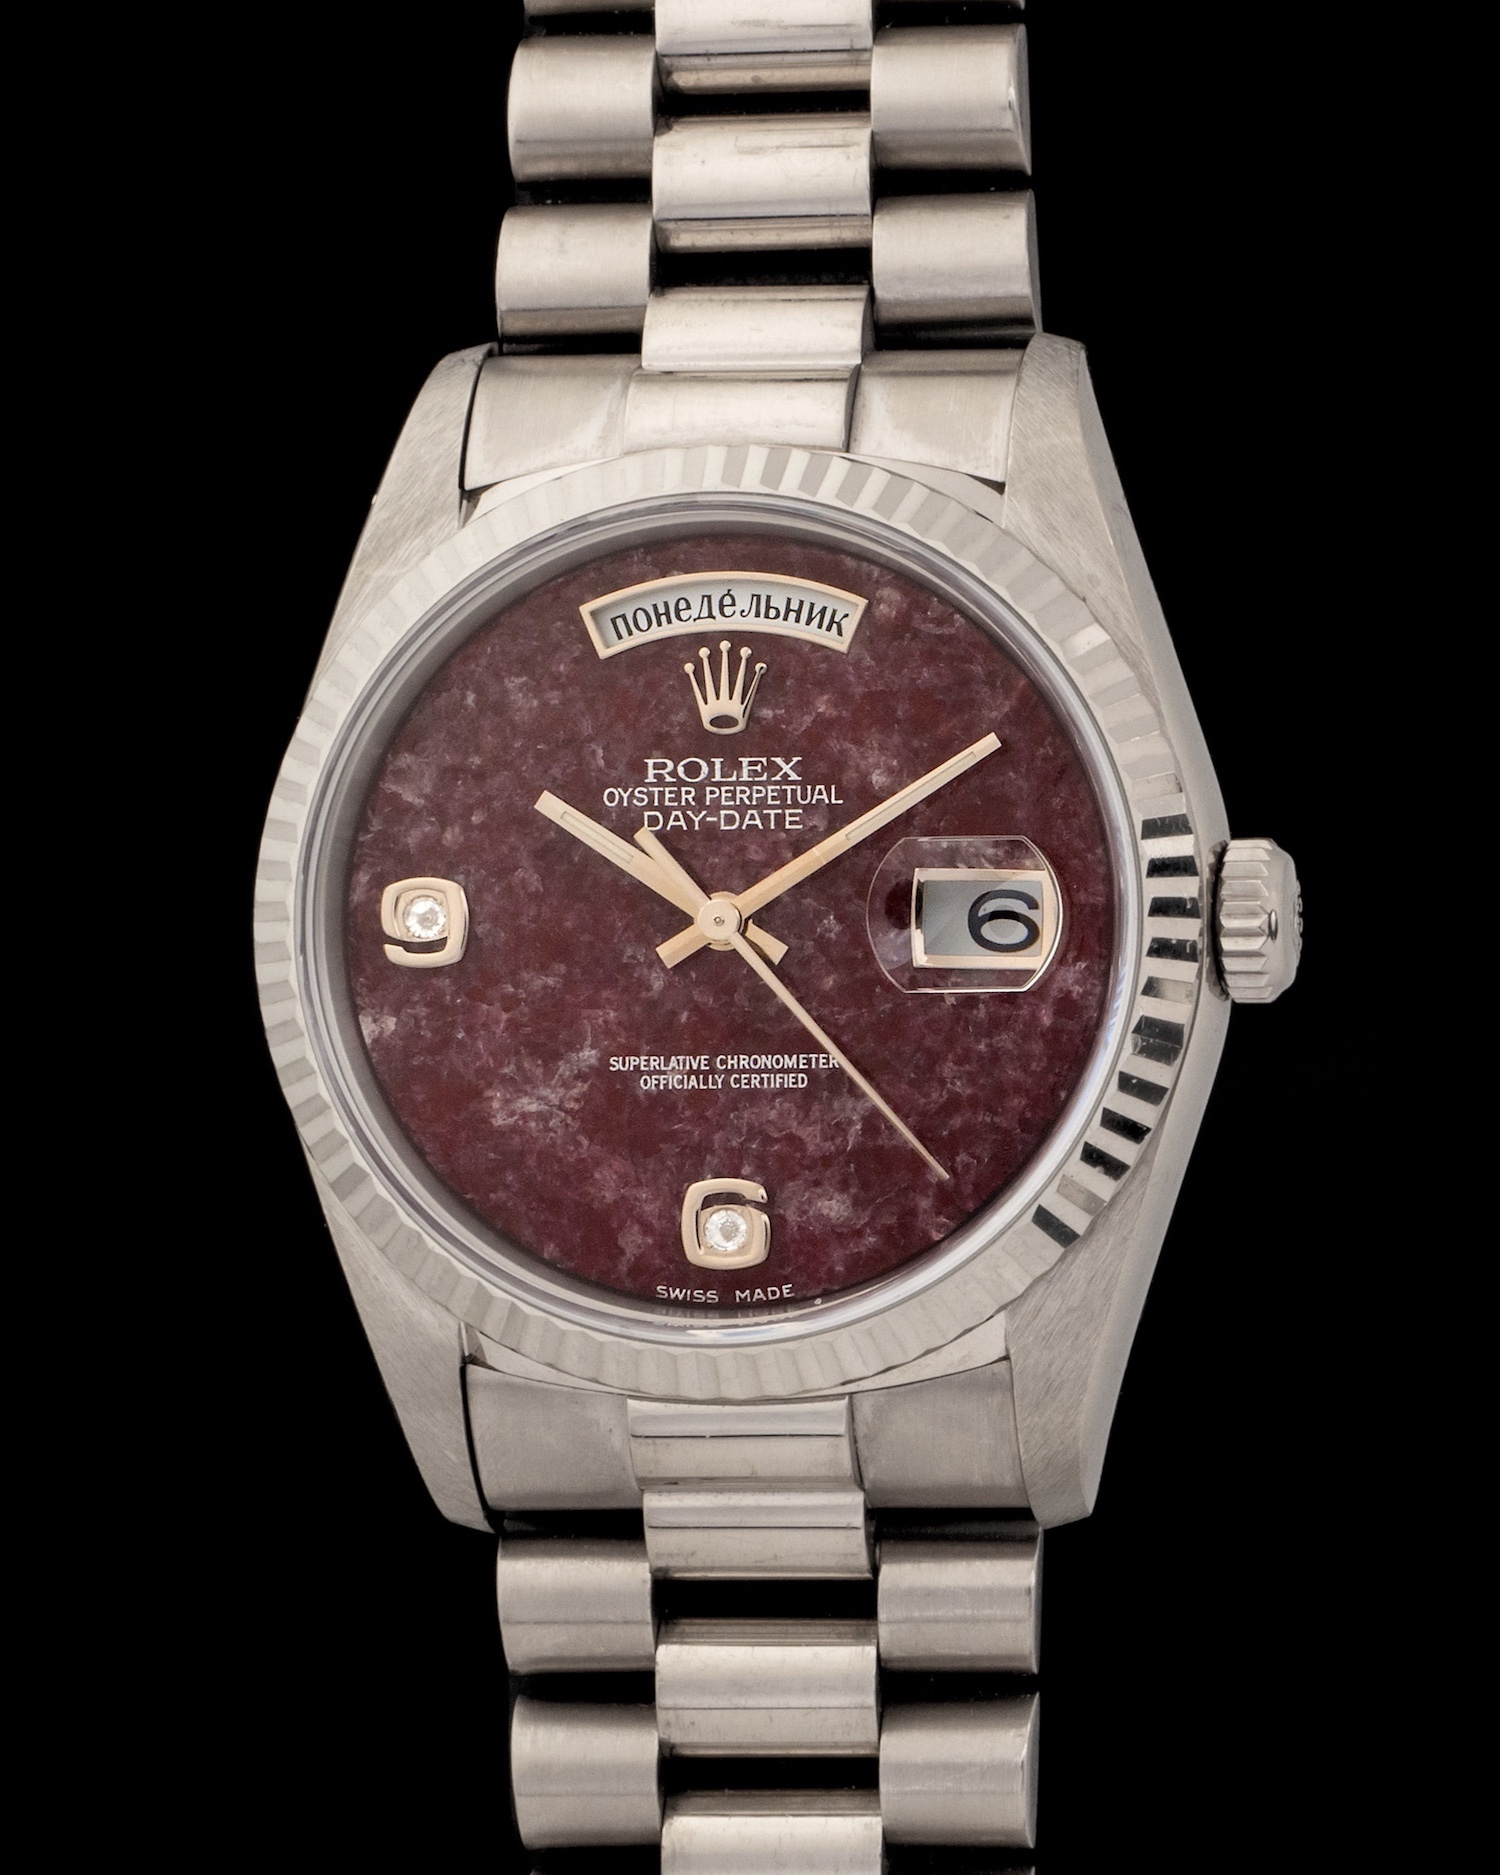 571eaea937a Rolex Day-Date 18239 White Gold with Grossularia Diamond Dial